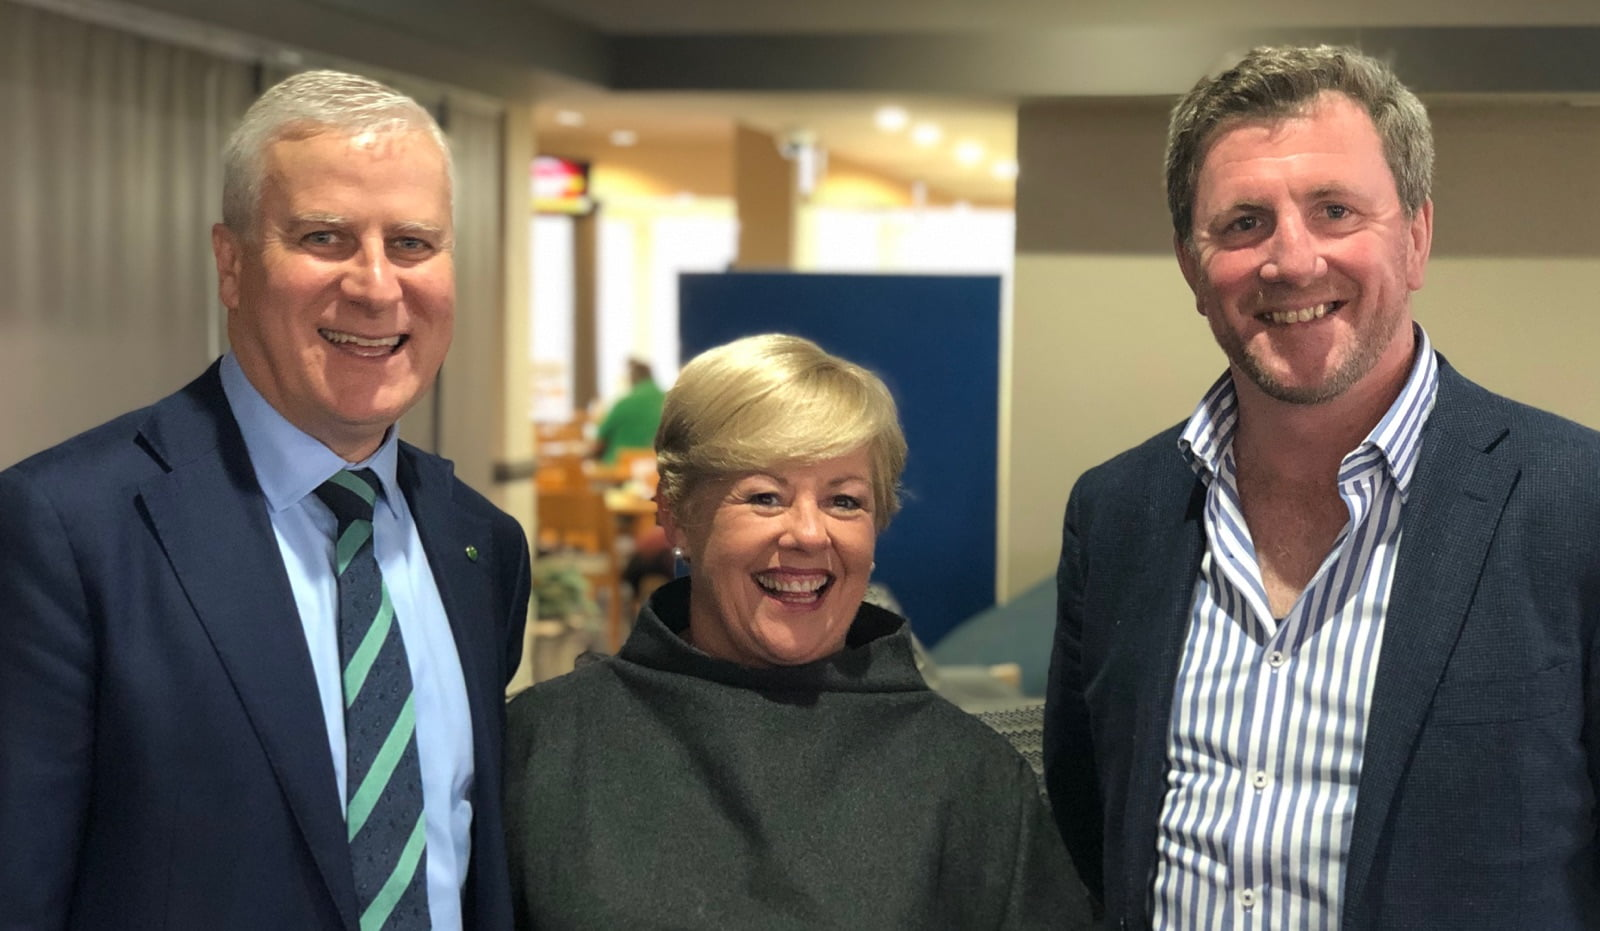 Deputy Prime Minister Michael McCormack with Judy Plunkett and NSW Guild president David Heffernan.